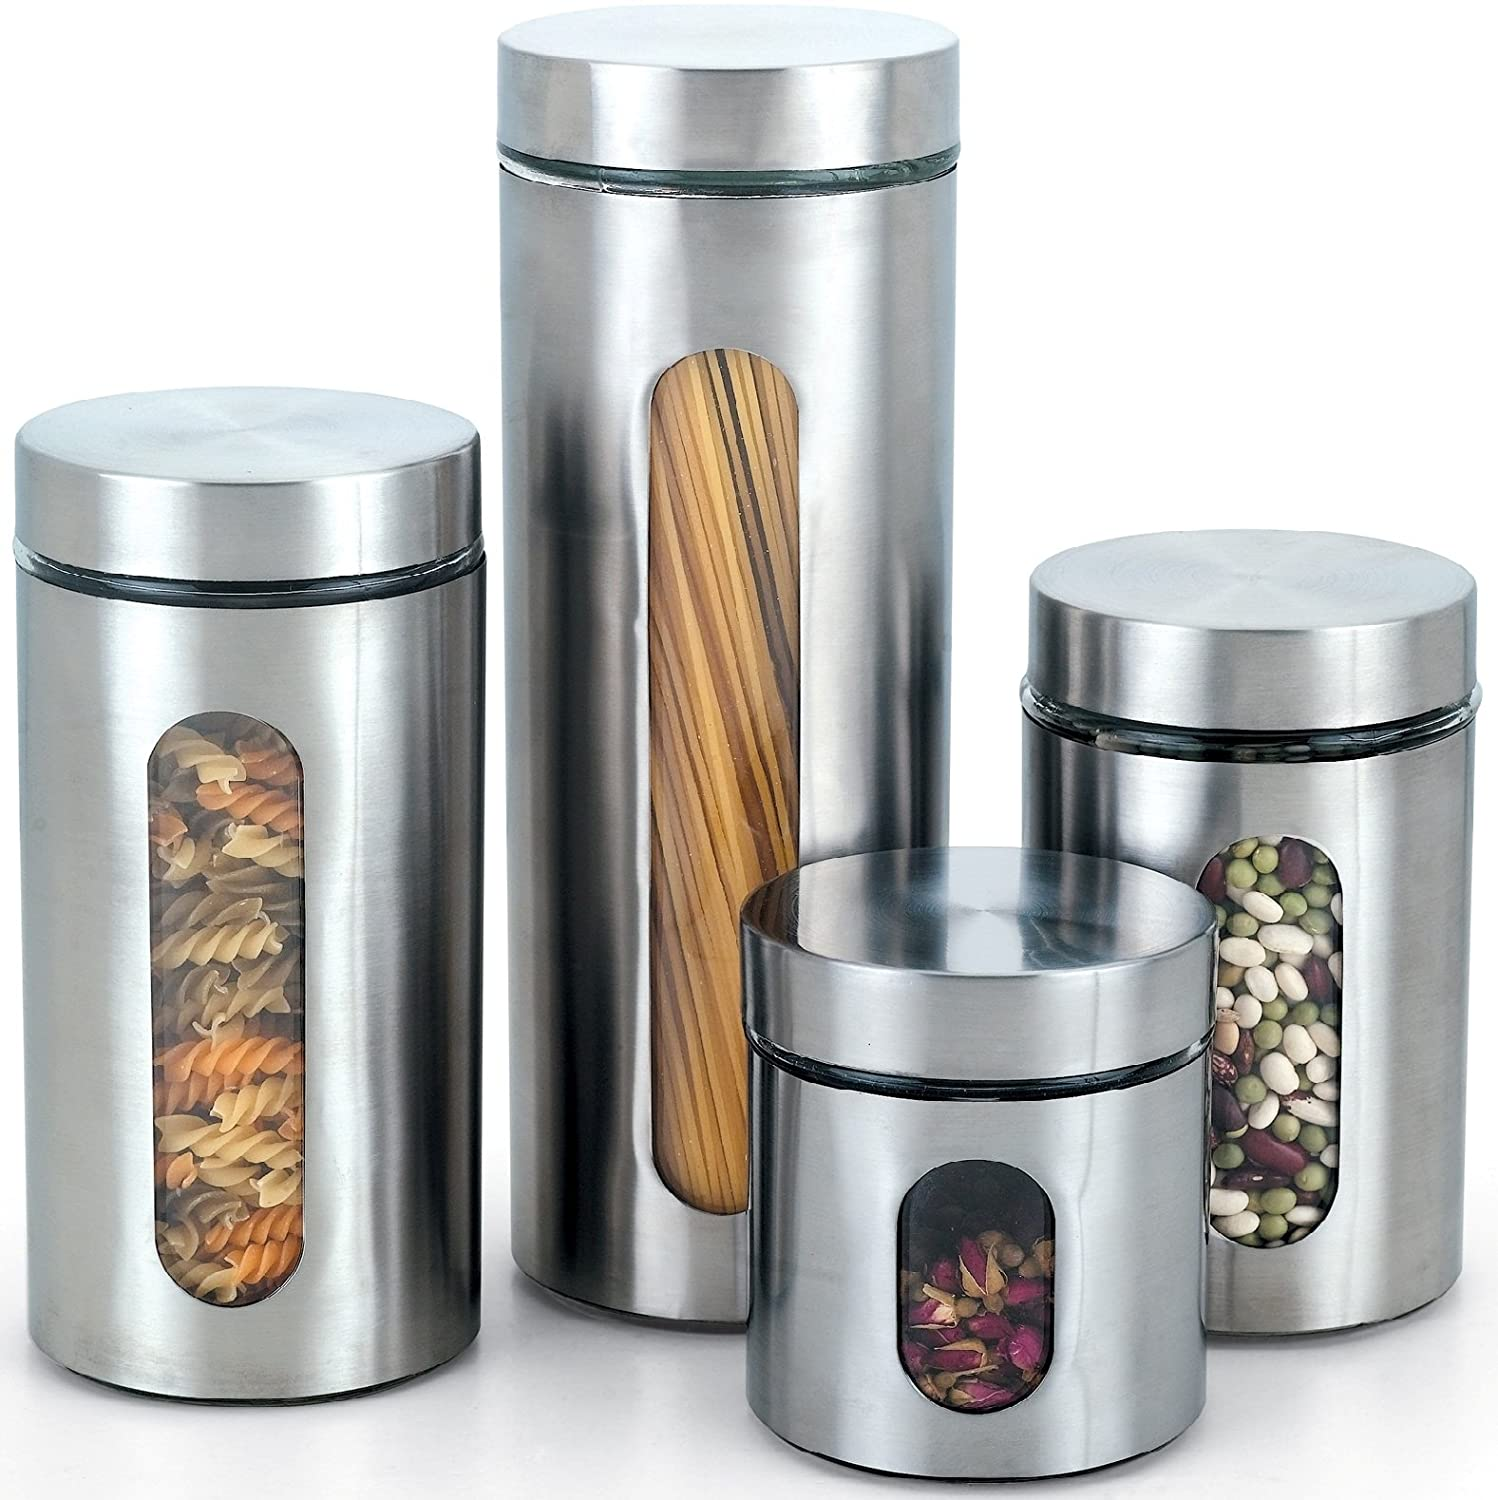 shop amazon com food bins amp canisters cook n home glass canister with stainless window set 4 piece